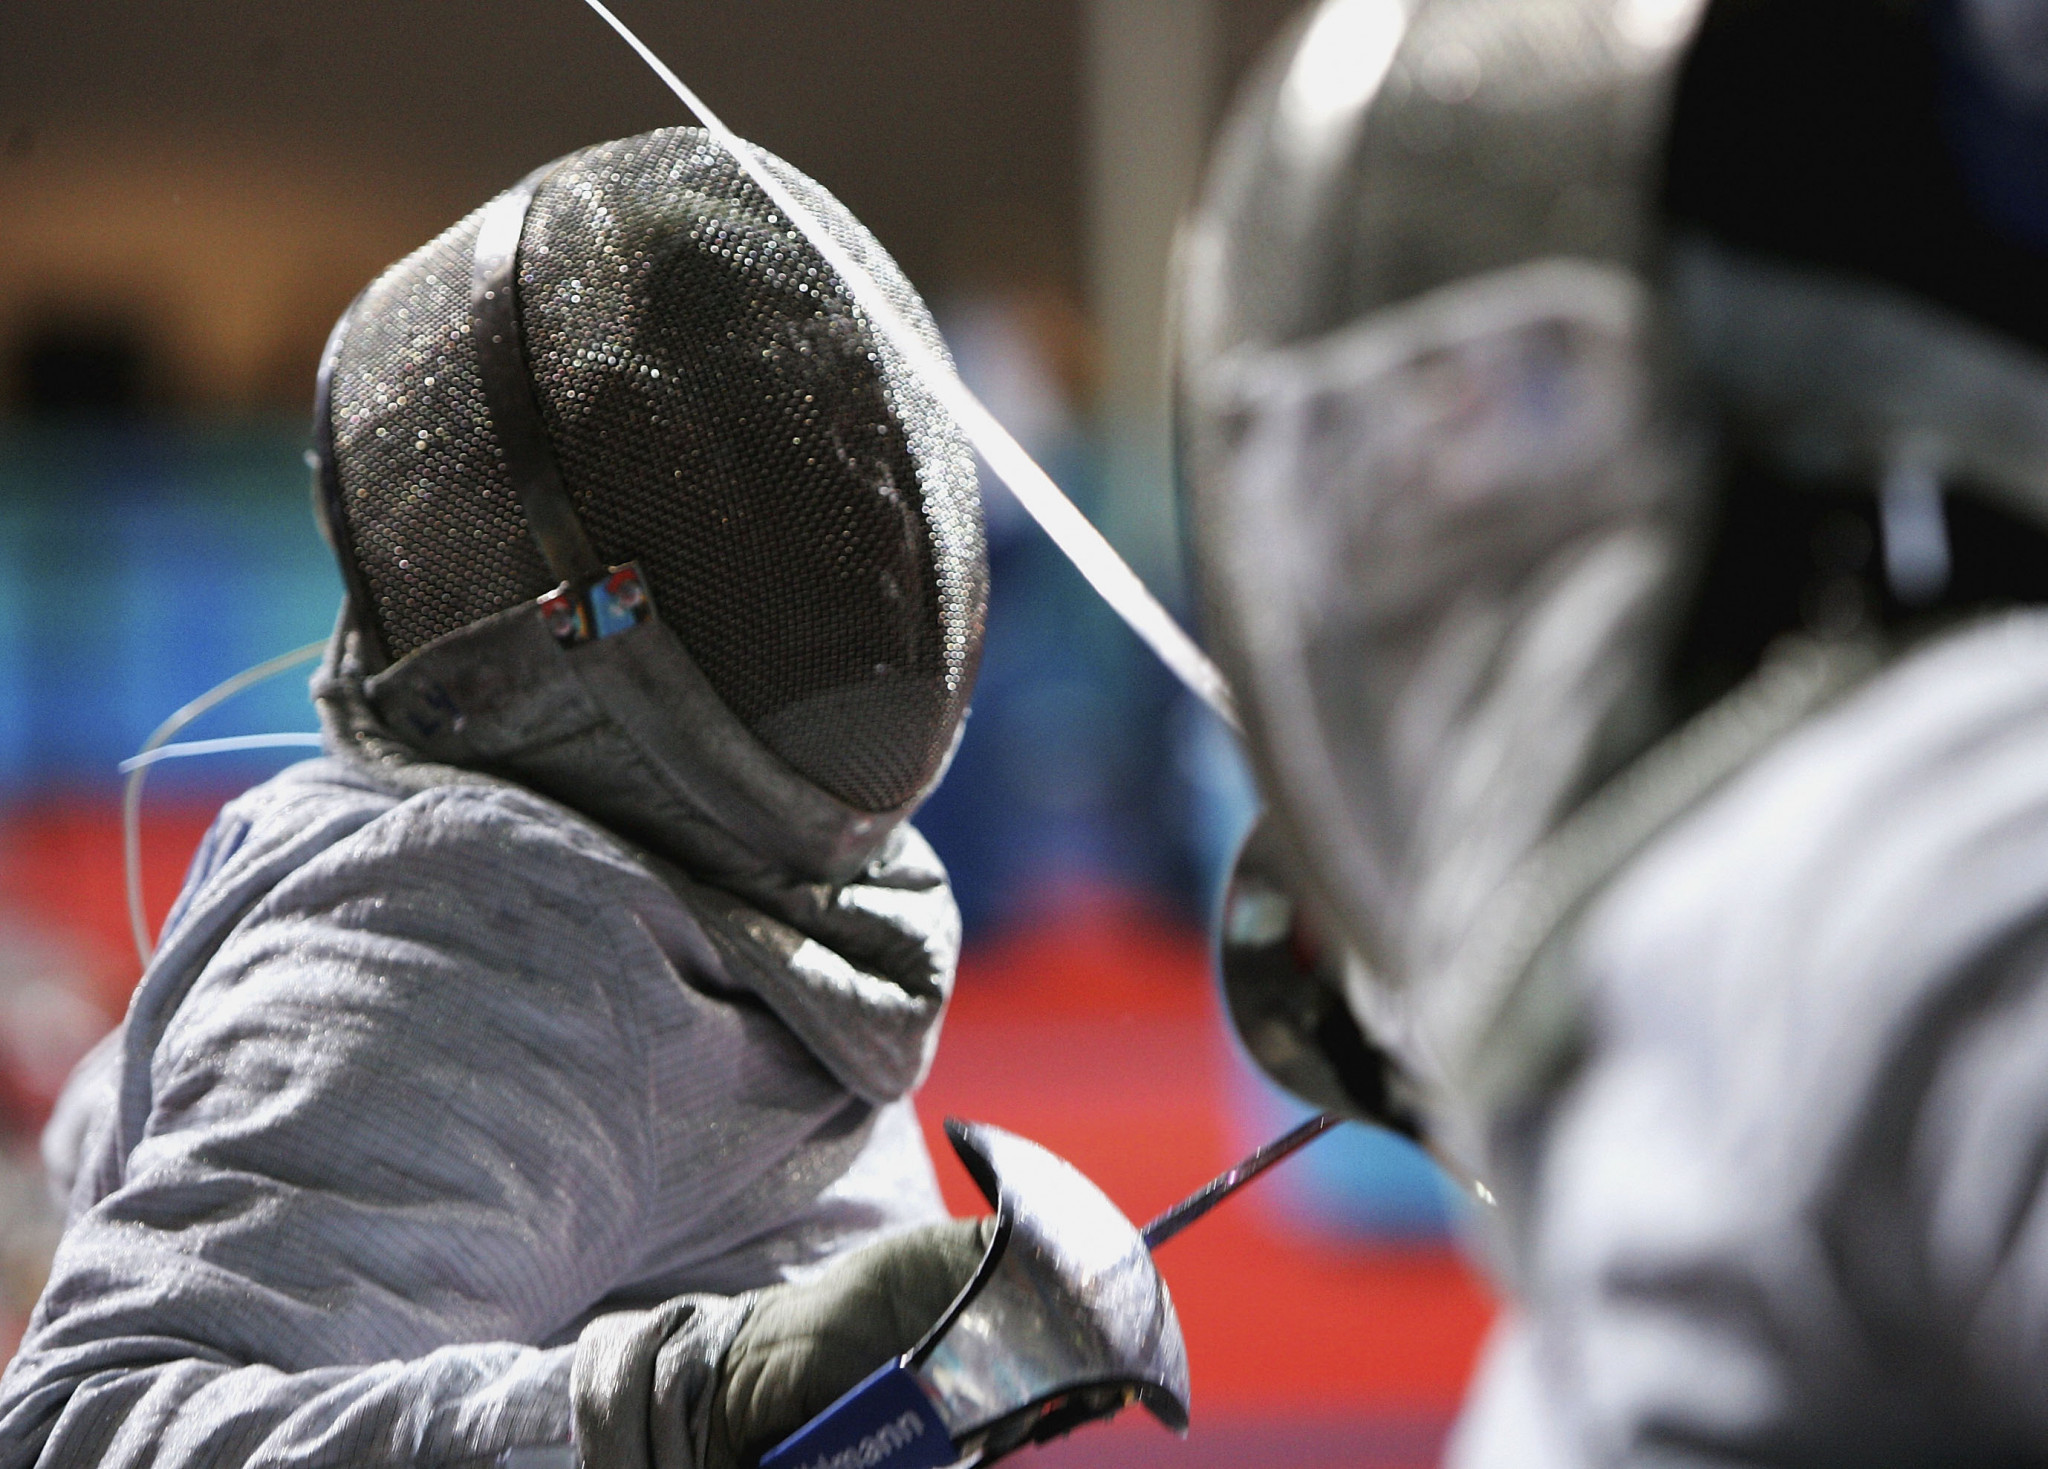 Continental competitions in wheelchair fencing moved to December